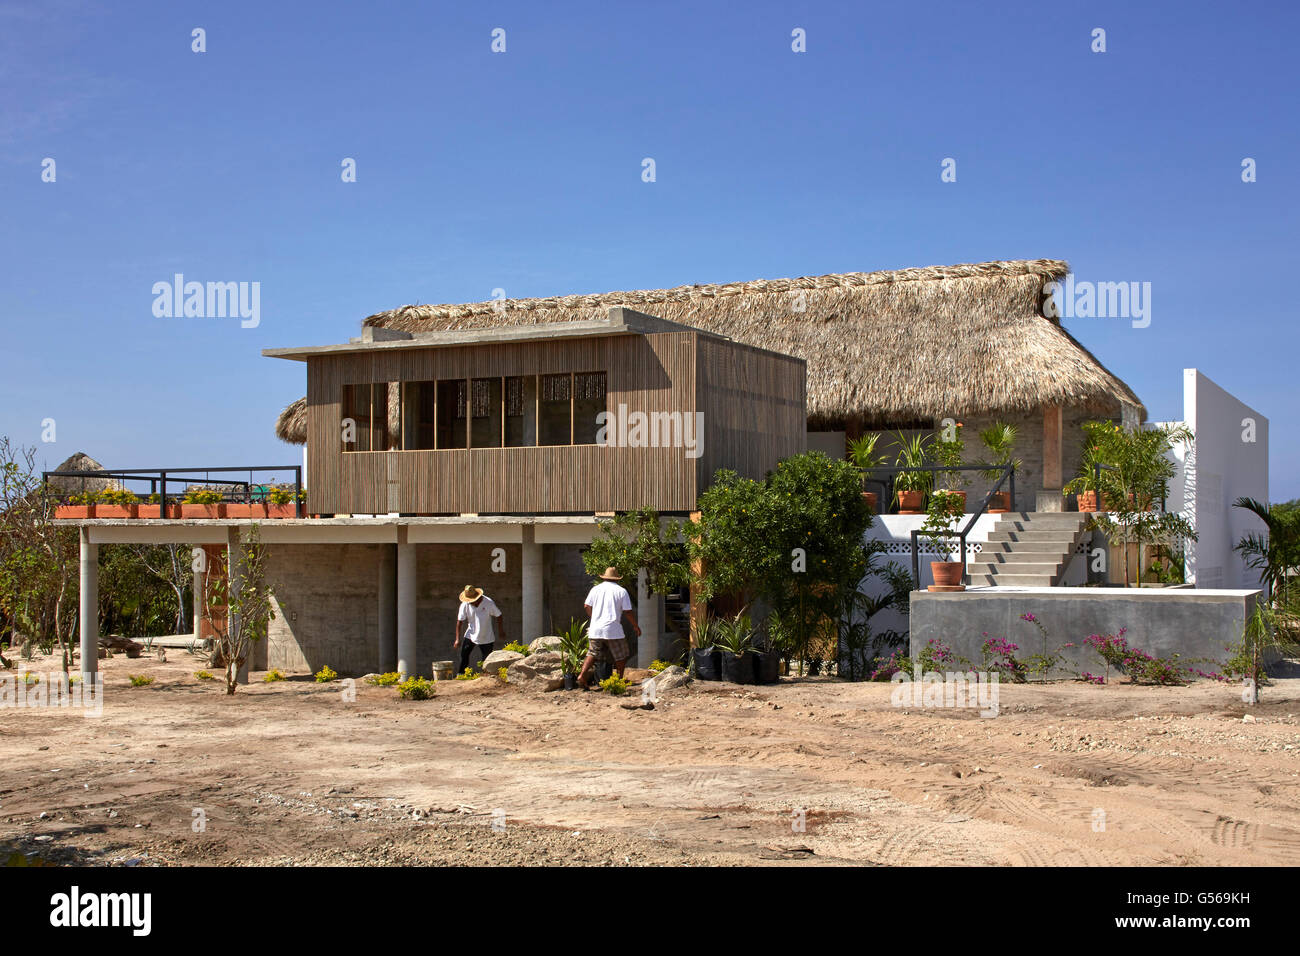 Overall exterior view from side. Casa Cal, Puerto Escondido, Mexico. Architect: BAAQ, 2015. Stock Photo